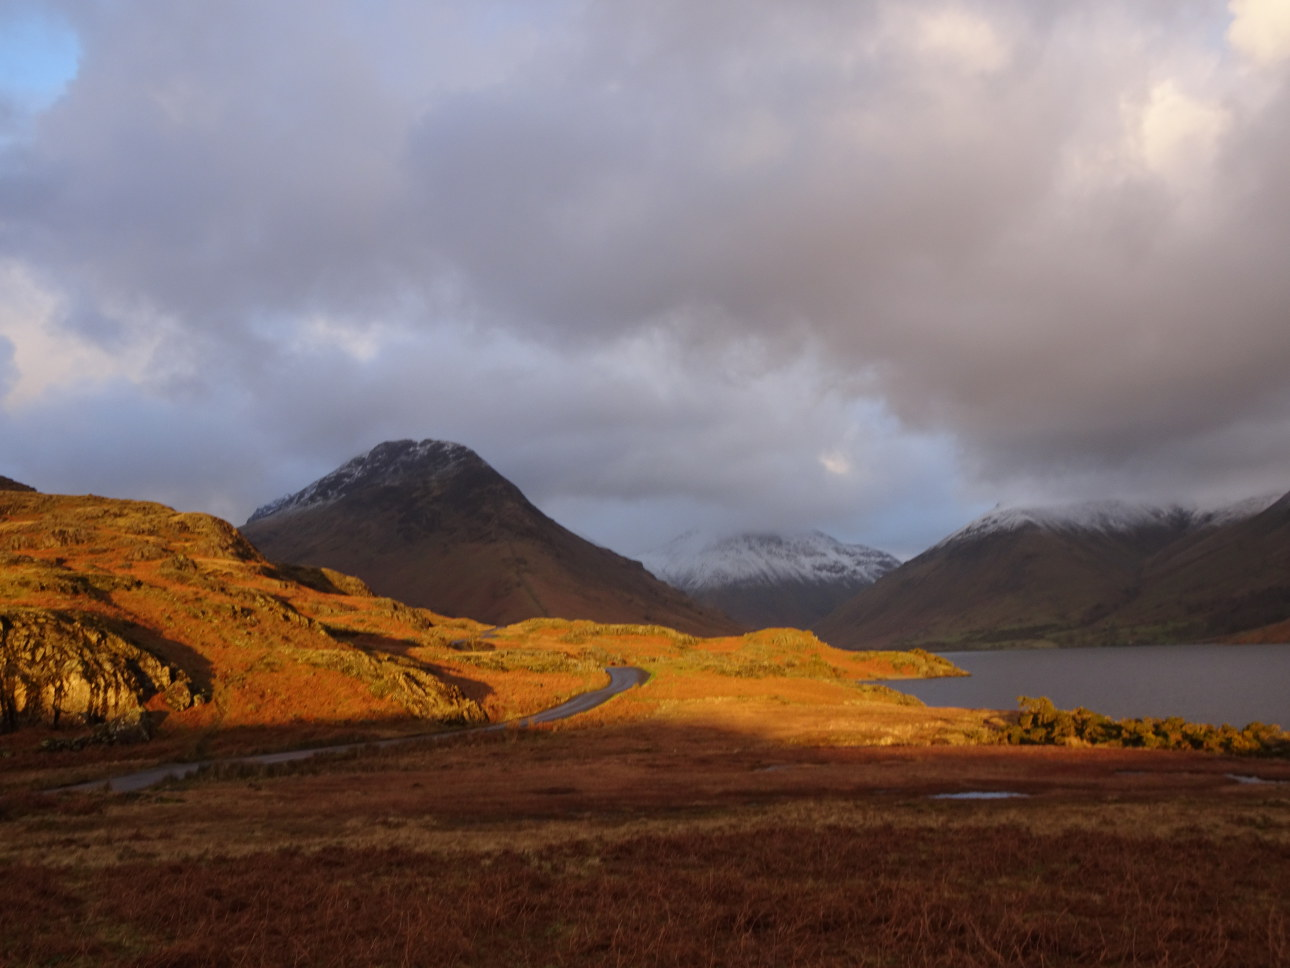 A blast of light illuminates the road leading to Wasdale Head.  Taken 22/1/20 at 4:03pm.